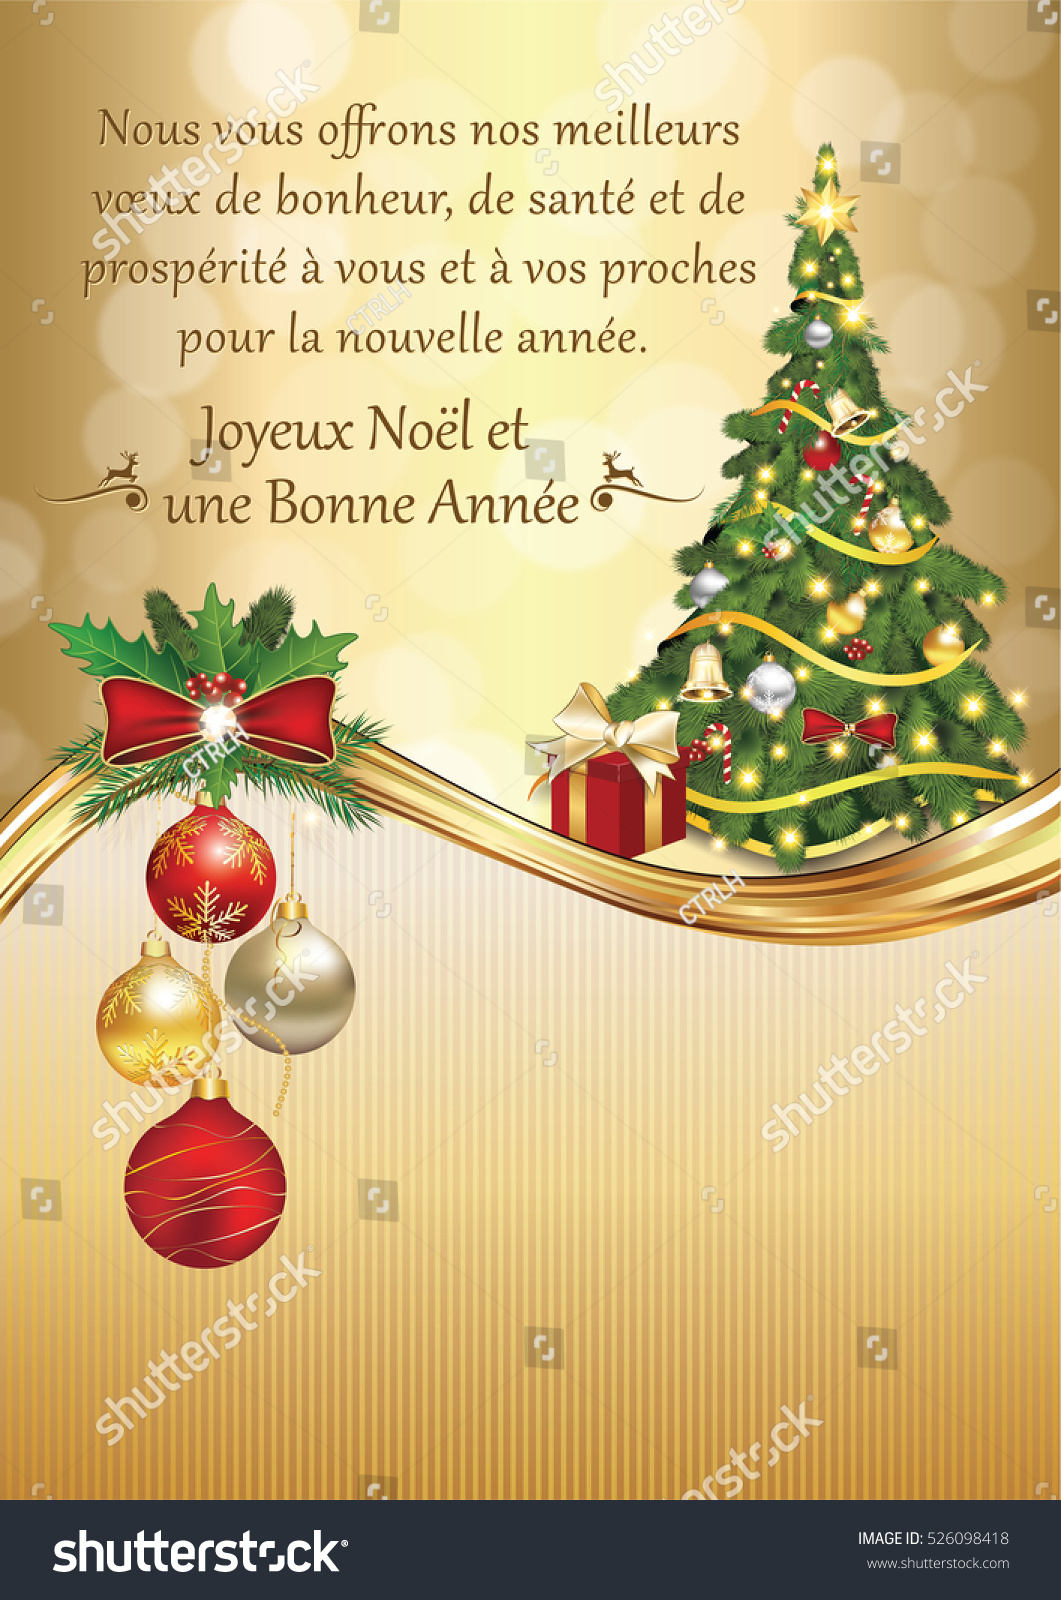 French Seasons Greetings New Year We Stock Illustration 526098418